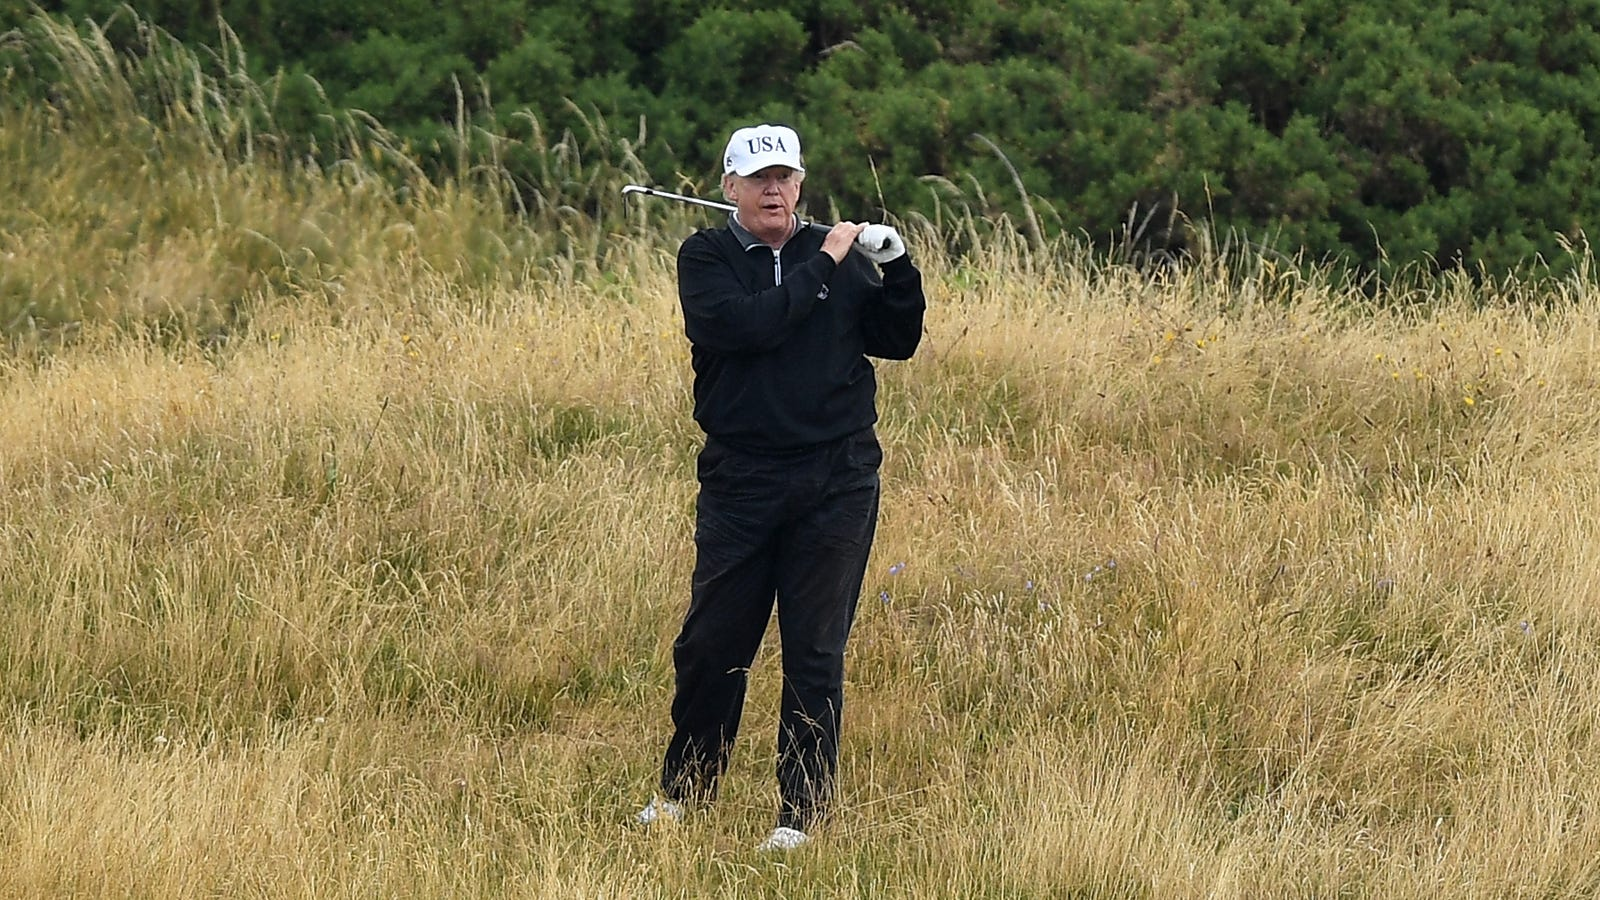 Trump Spent More Than Three Times the Cost of Robert Mueller's Russia Investigation Playing Golf at His Own Resorts